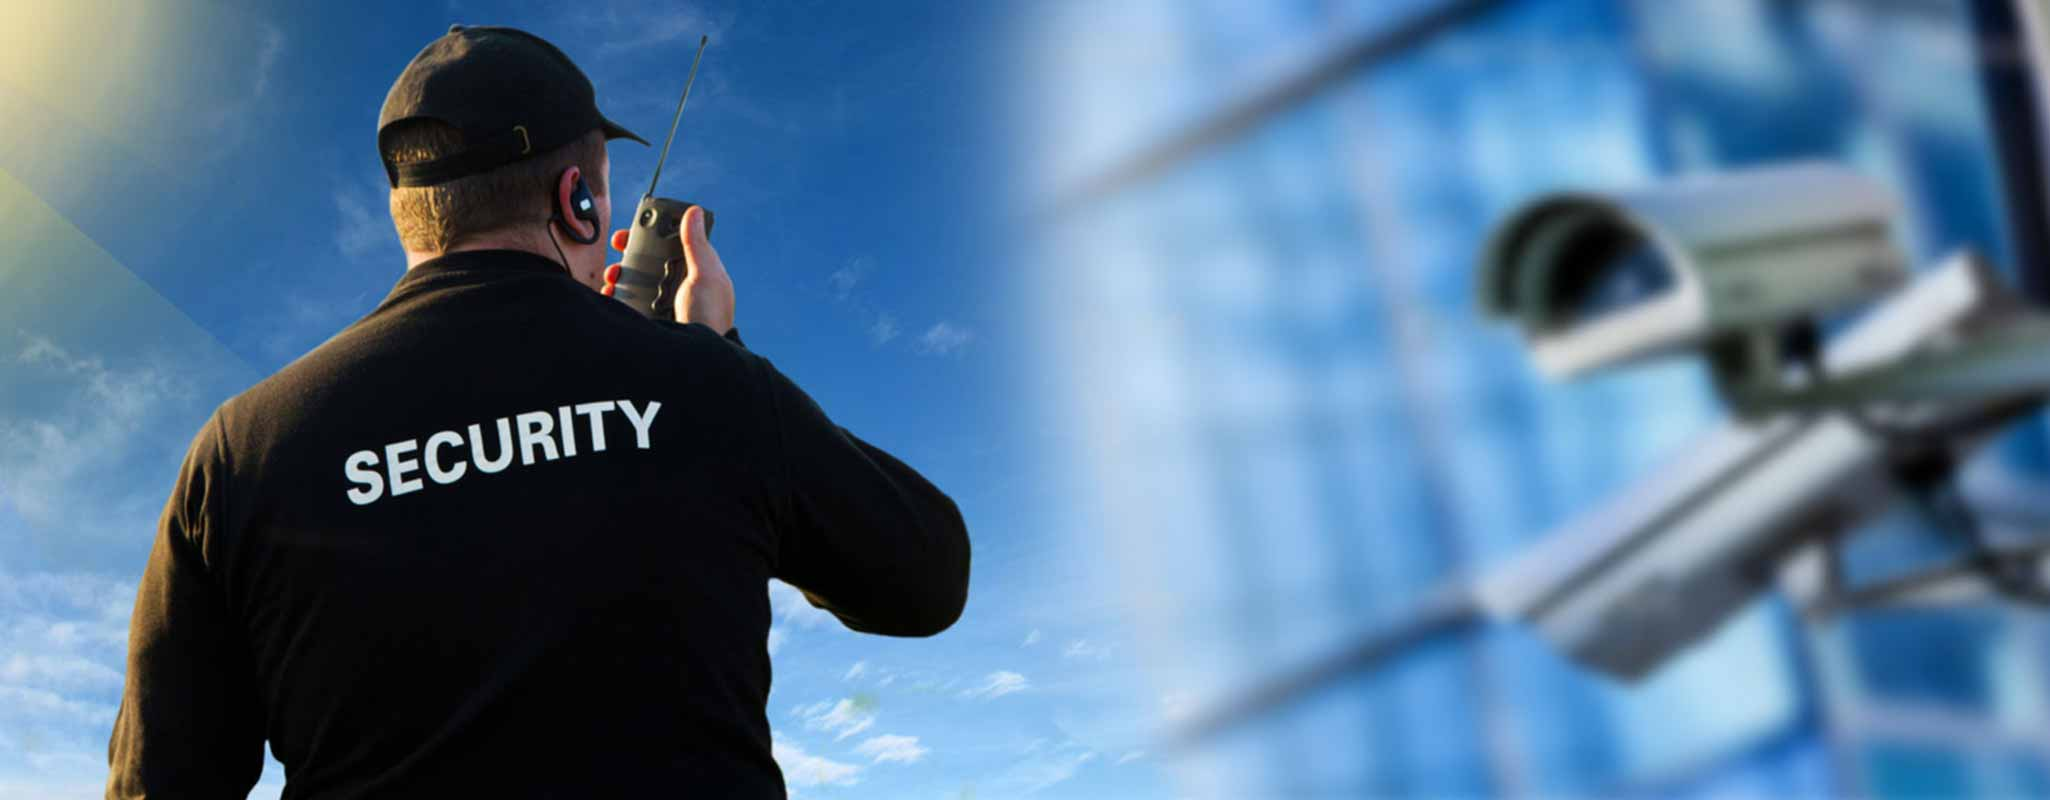 Why Do You Need To Hire Event Security Companies And What Service Hey Provide?